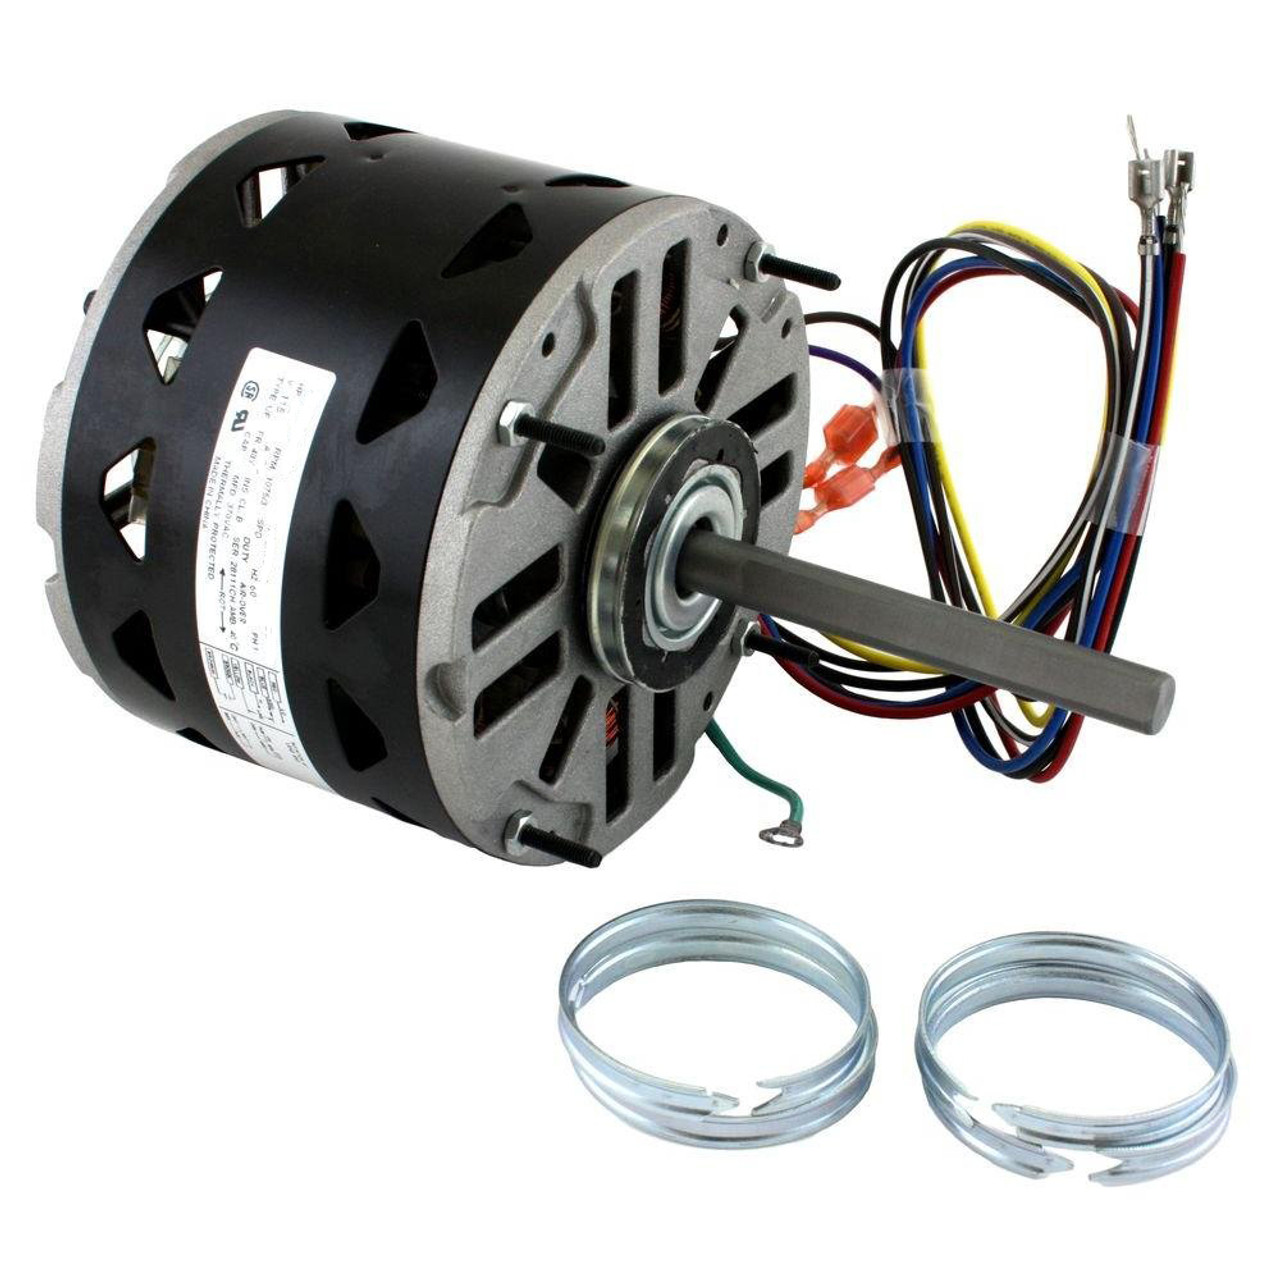 1/3 hp 1075 RPM 3-Speed 48 Frame 115V Direct Drive Furnace Motor Century #  DL1036Electric Motor Warehouse